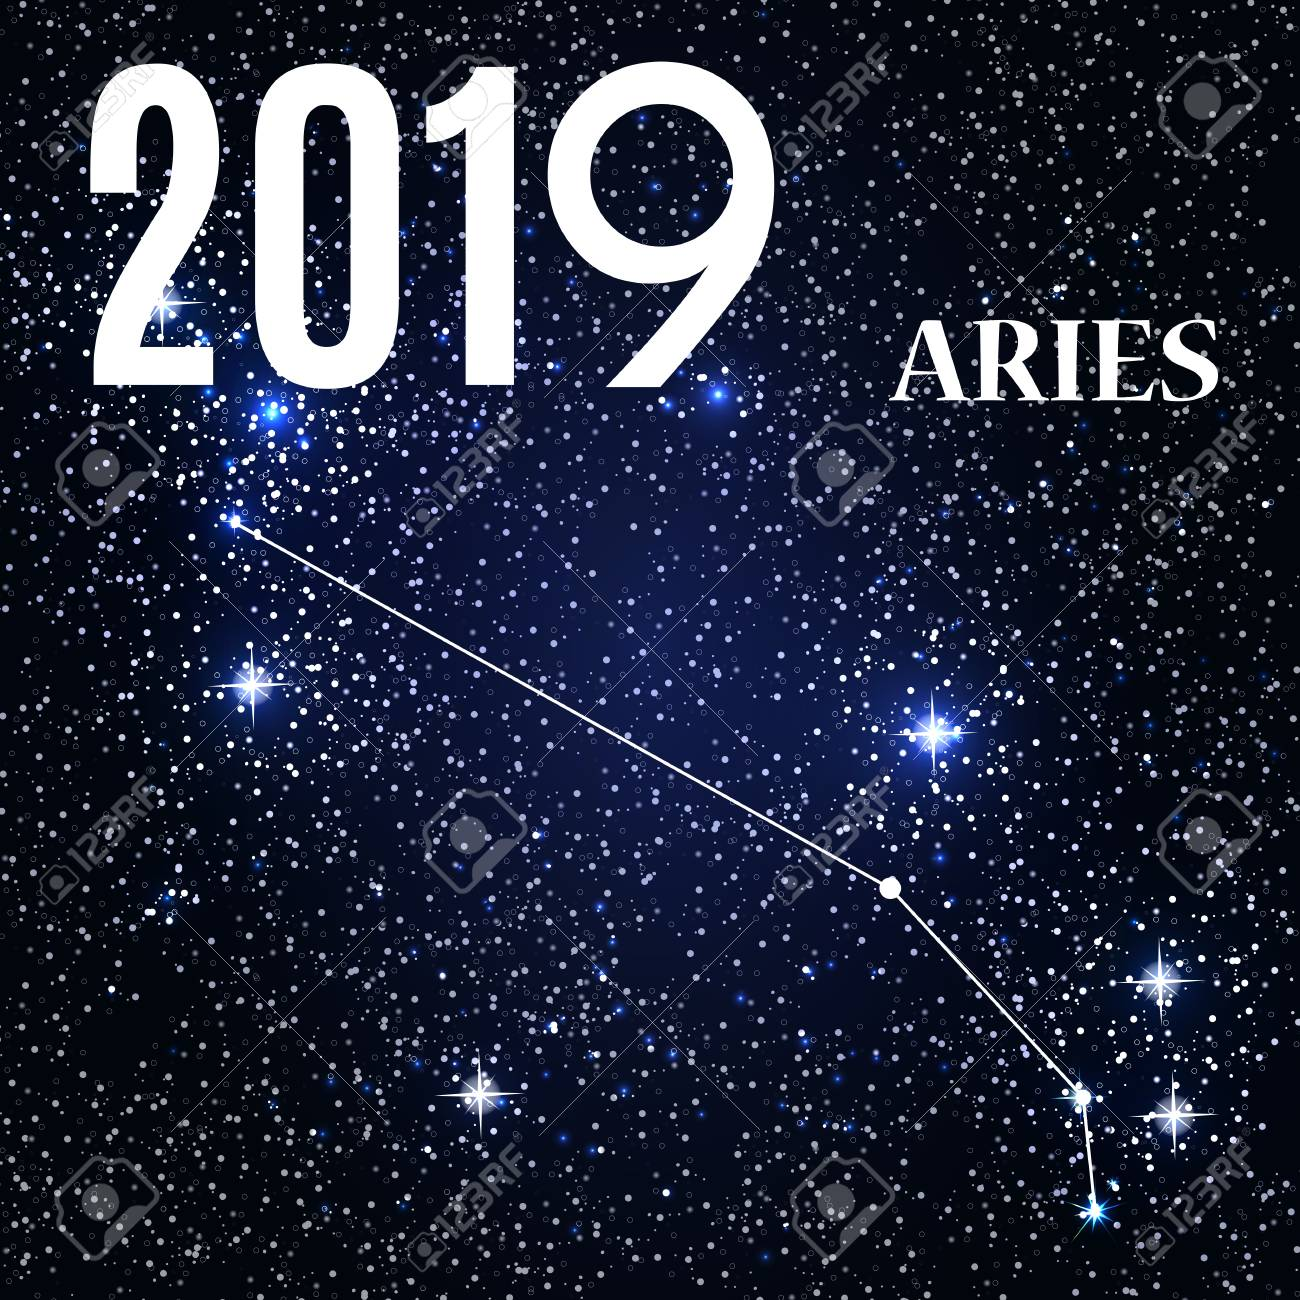 Aries the Challenger